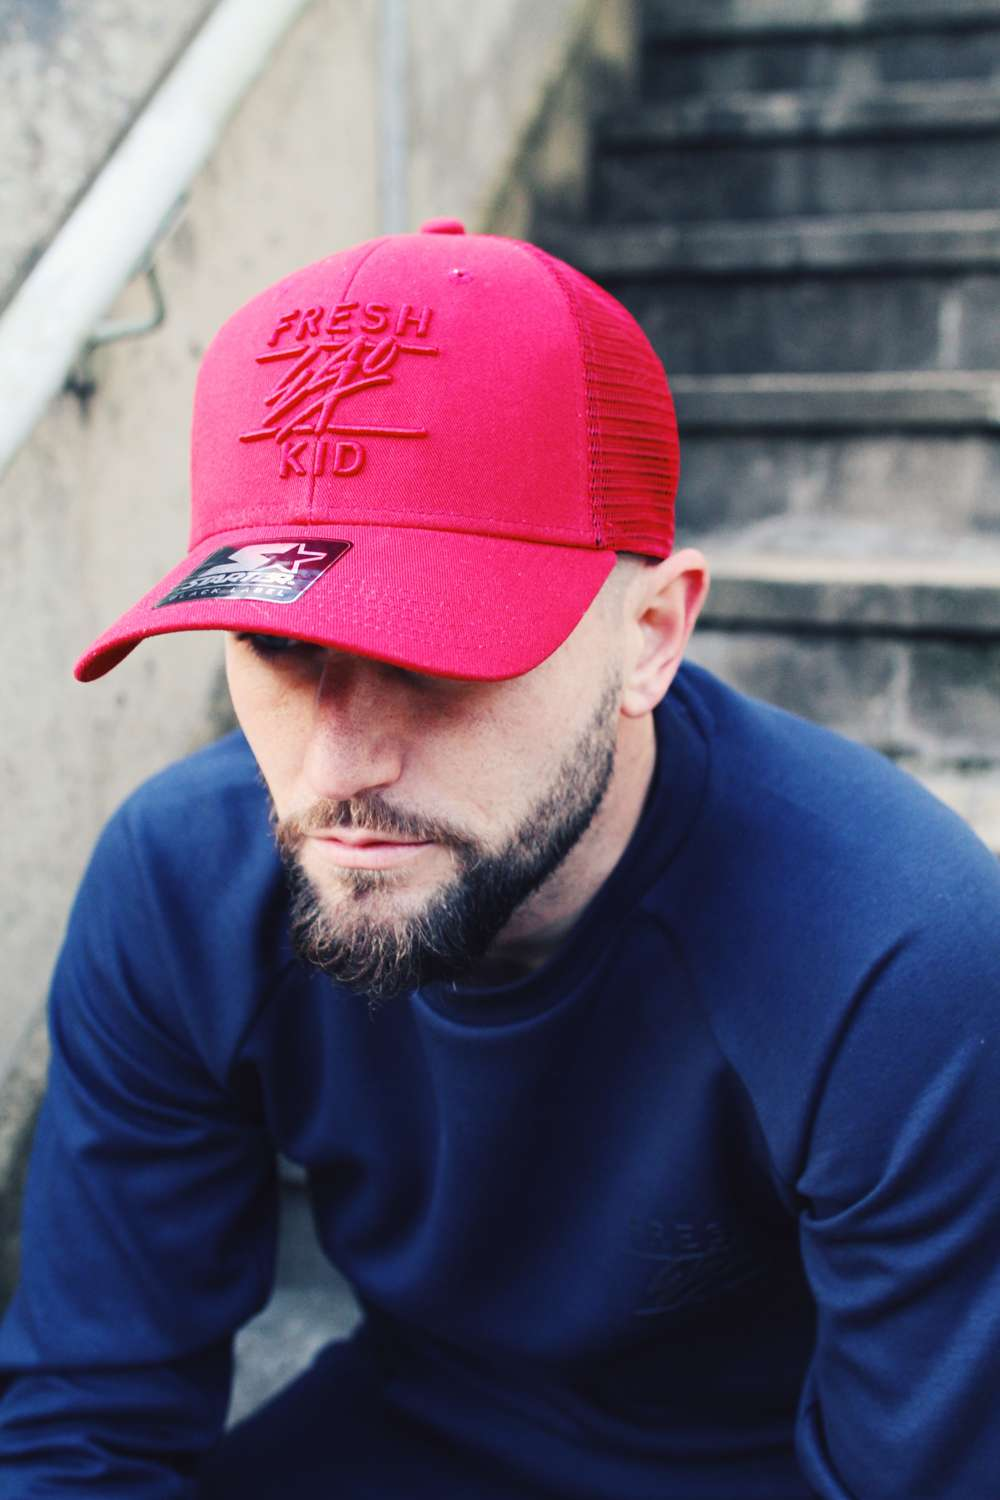 Fresh Ego Kid Mesh Trucker Cap - Red - 1